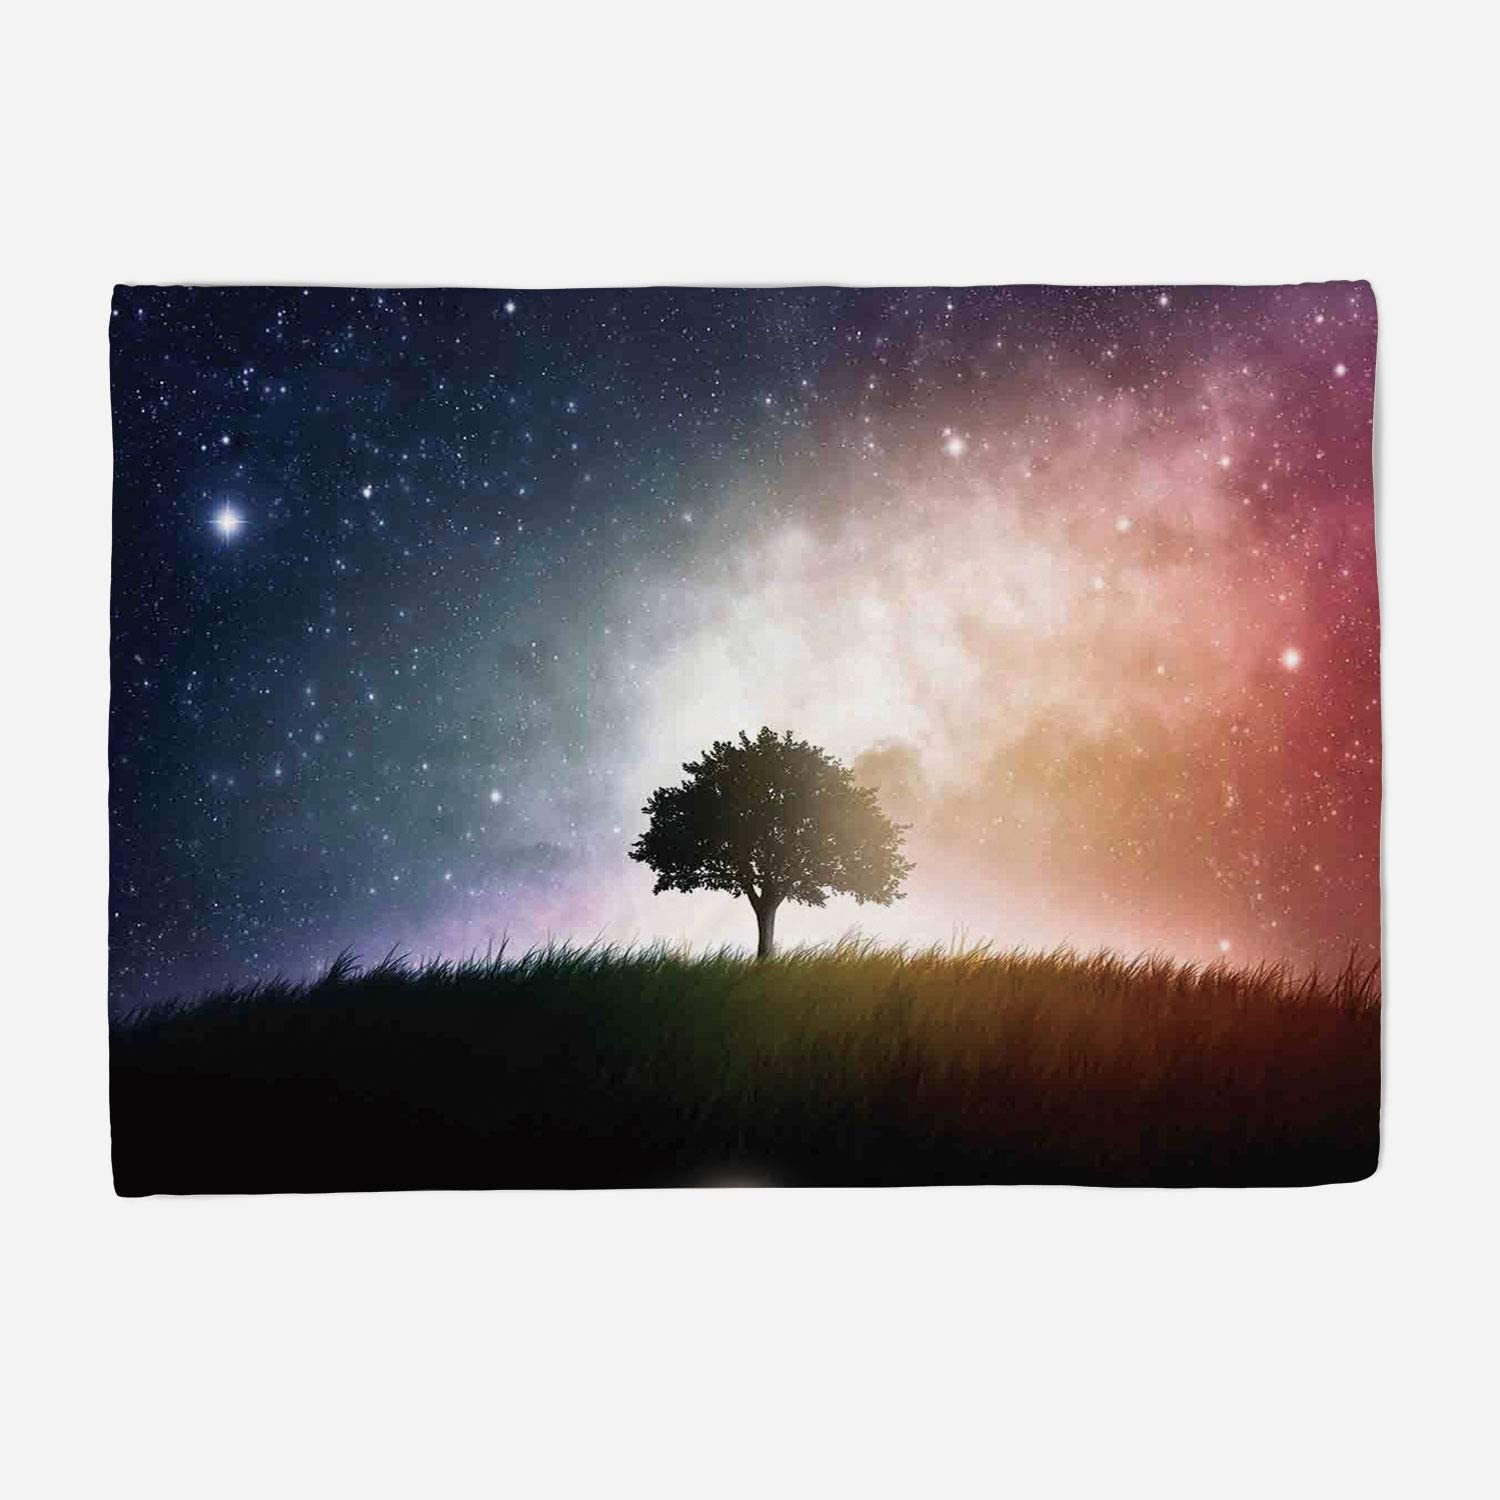 YOLIYANA Microfiber Throw Blanket Set Perfect for Couch Sofa or Bed 49x39 inches Space,Single Tree in Field of Meadow Valley with Stars Universe Spiritual Display Print,Magenta bluee